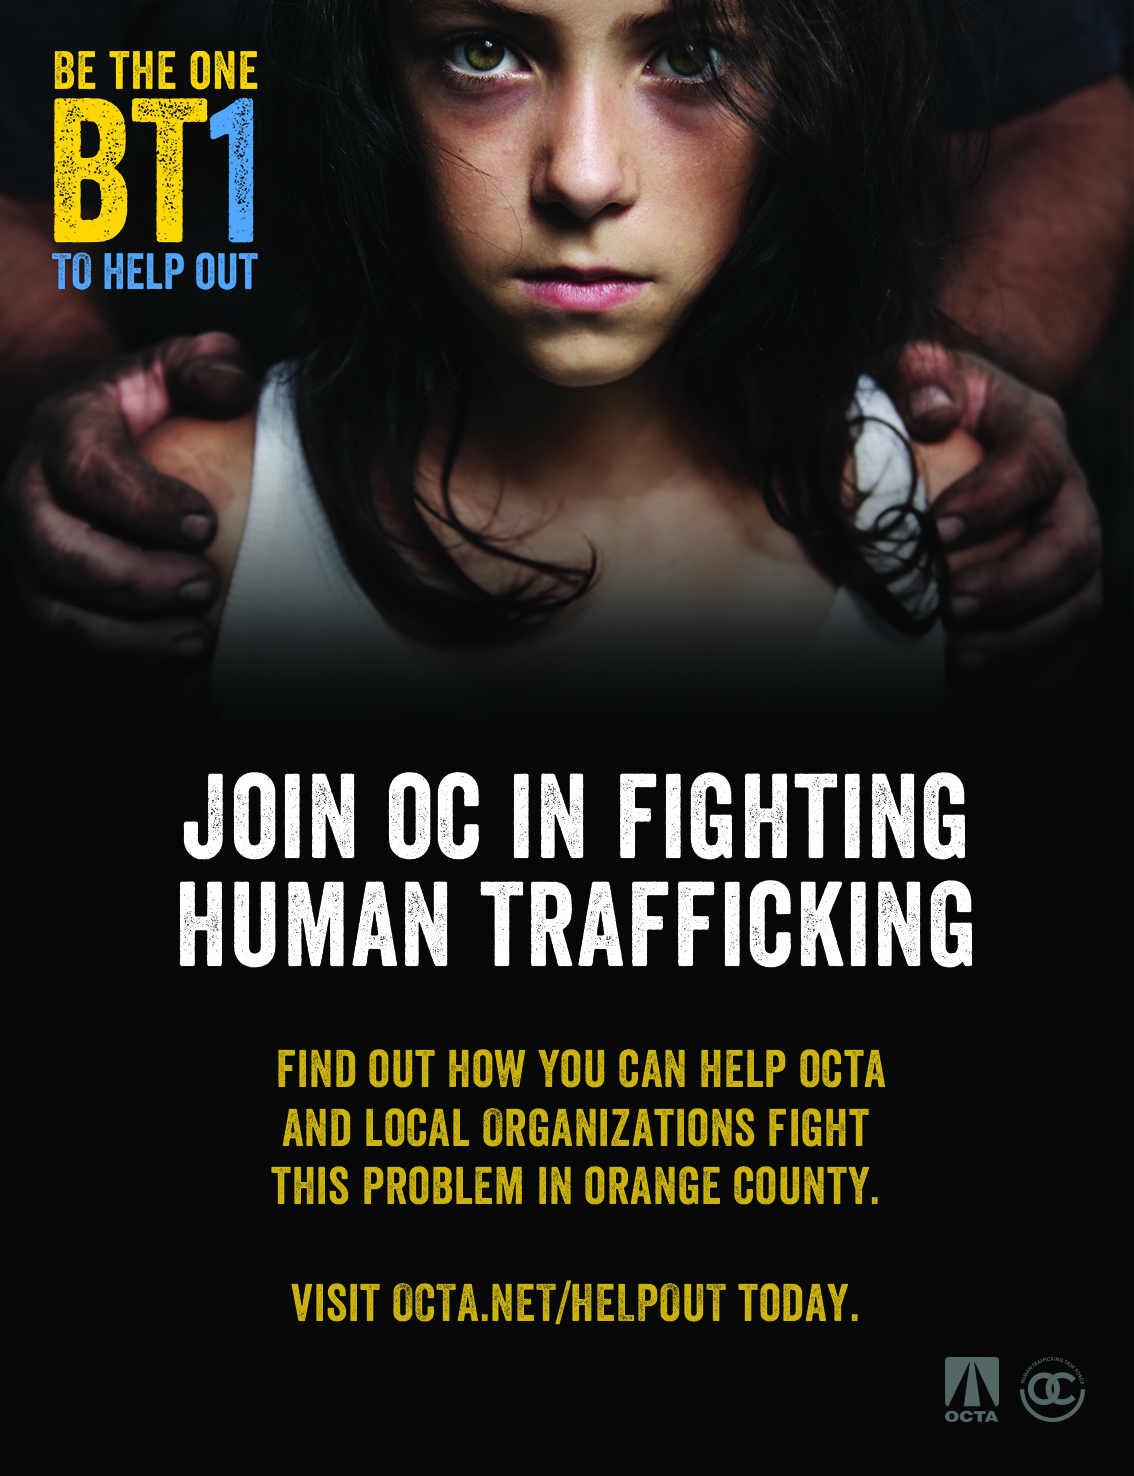 Be the One BT1 to Help Out